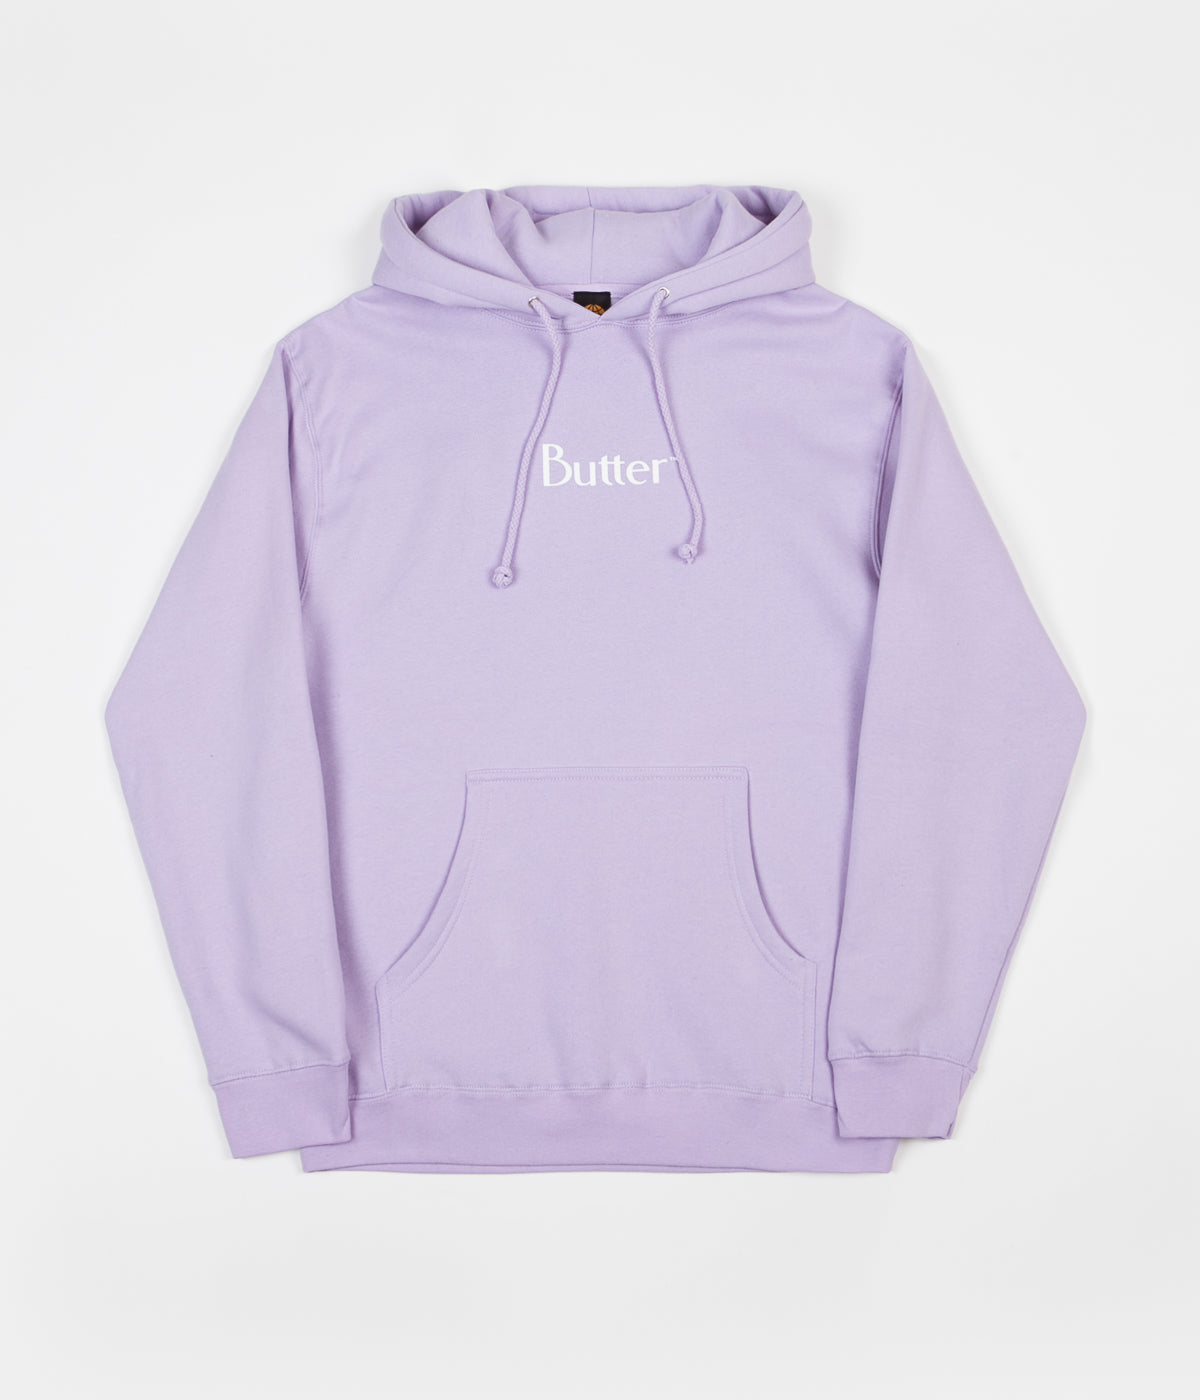 Butter Goods Classic Logo Hoodie - Lavender